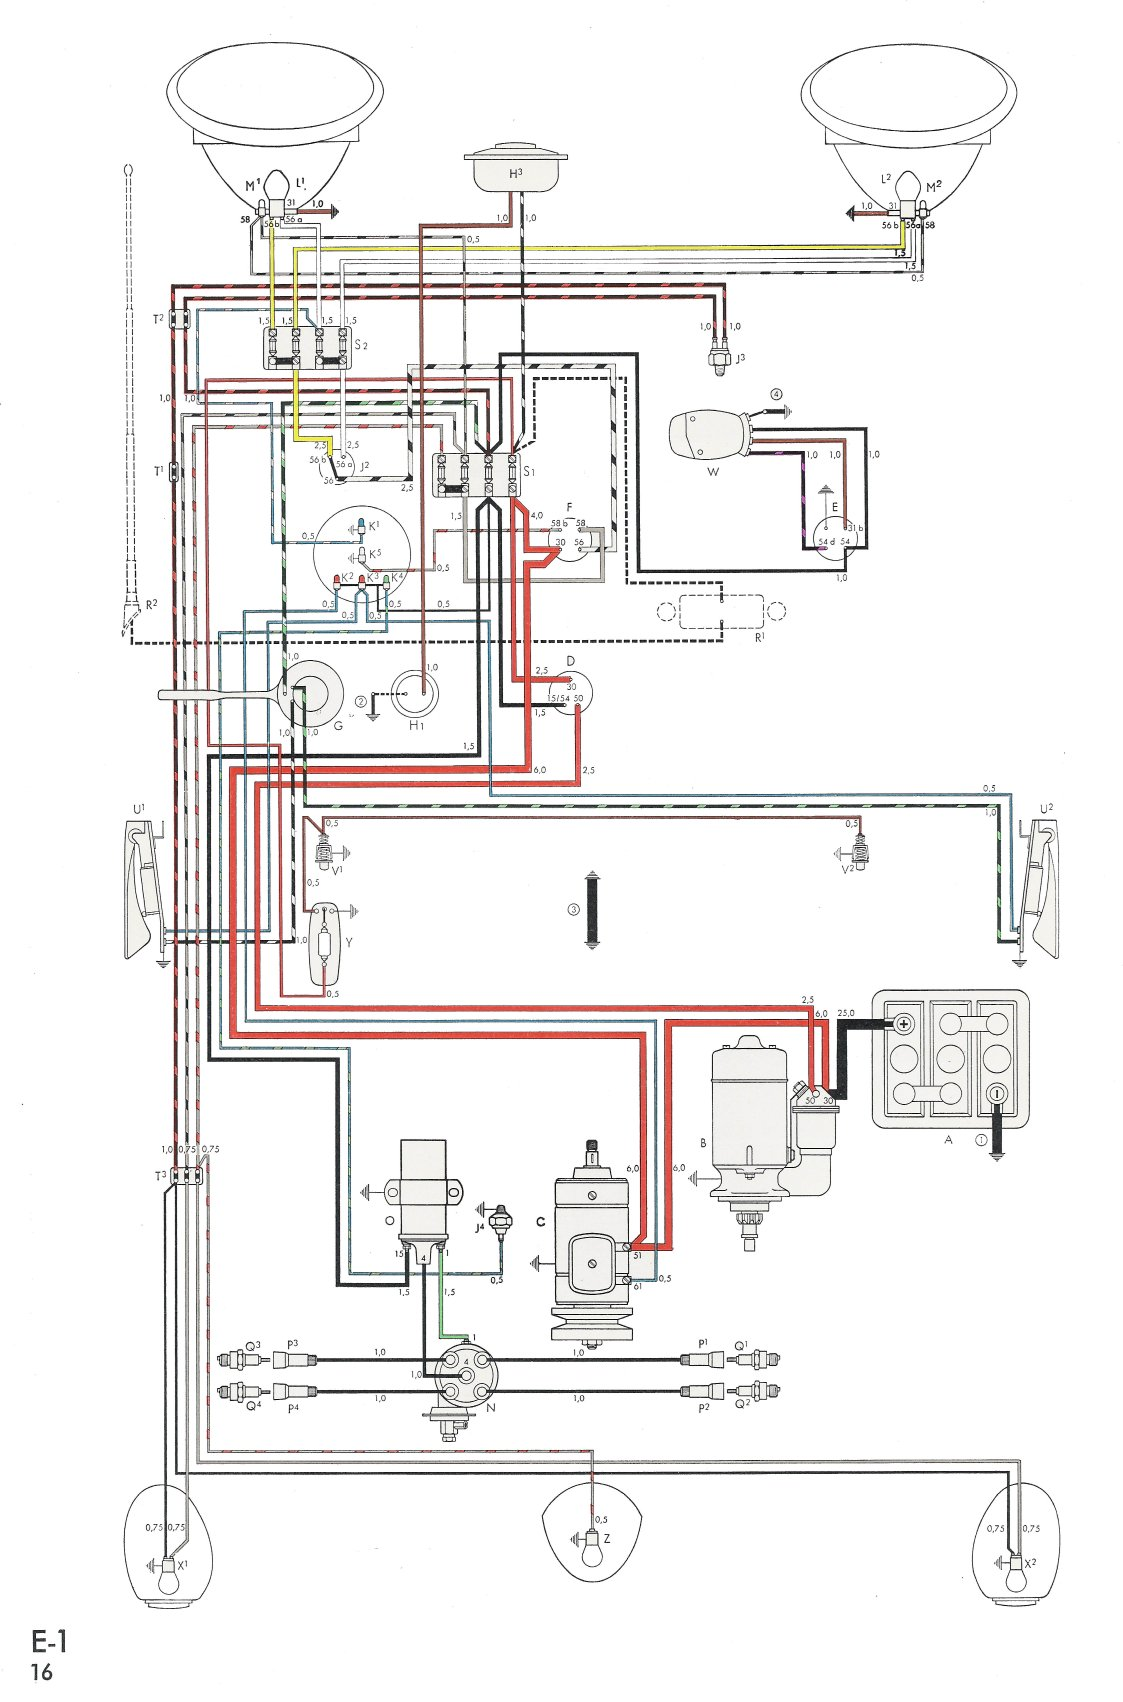 hight resolution of 58 vw alternator wiring blog wiring diagram 58 vw alternator wiring